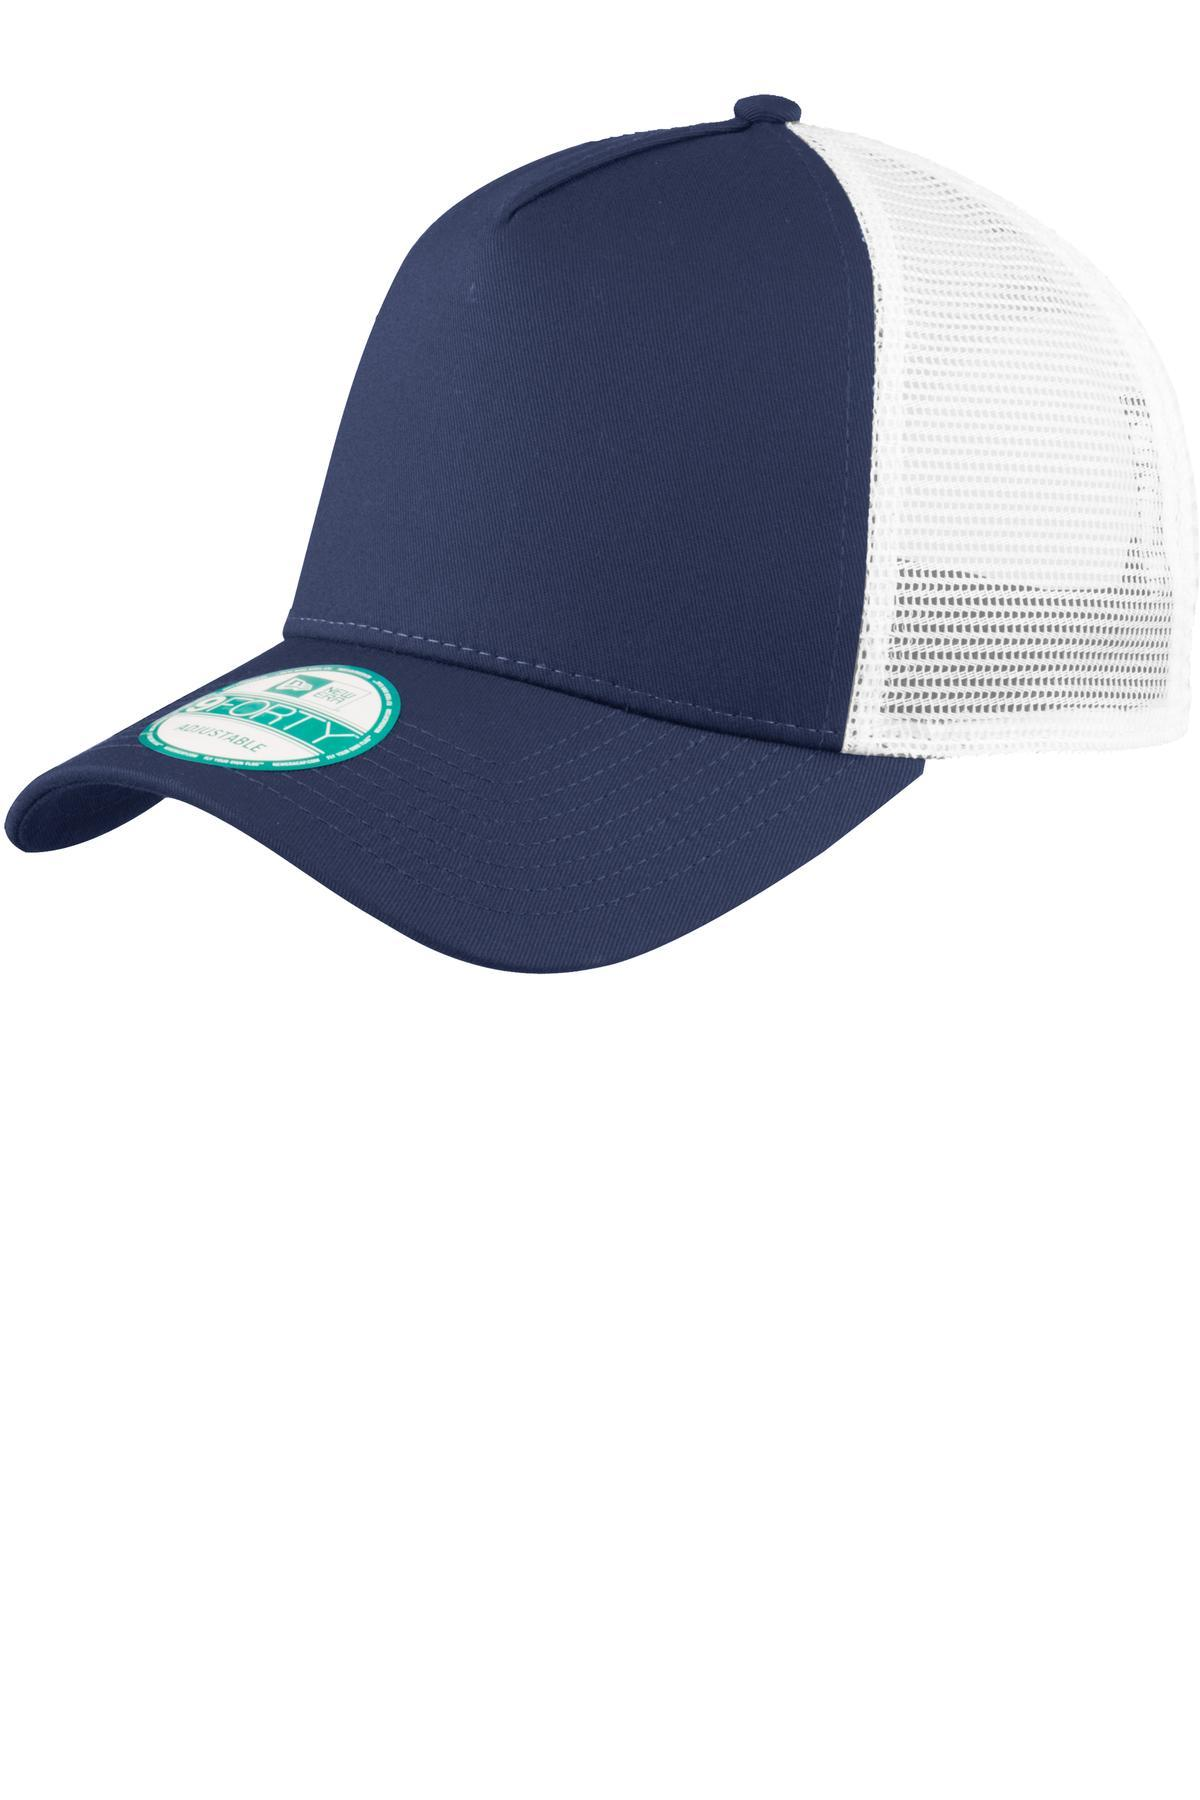 Deep Navy/ White - New Era NE205